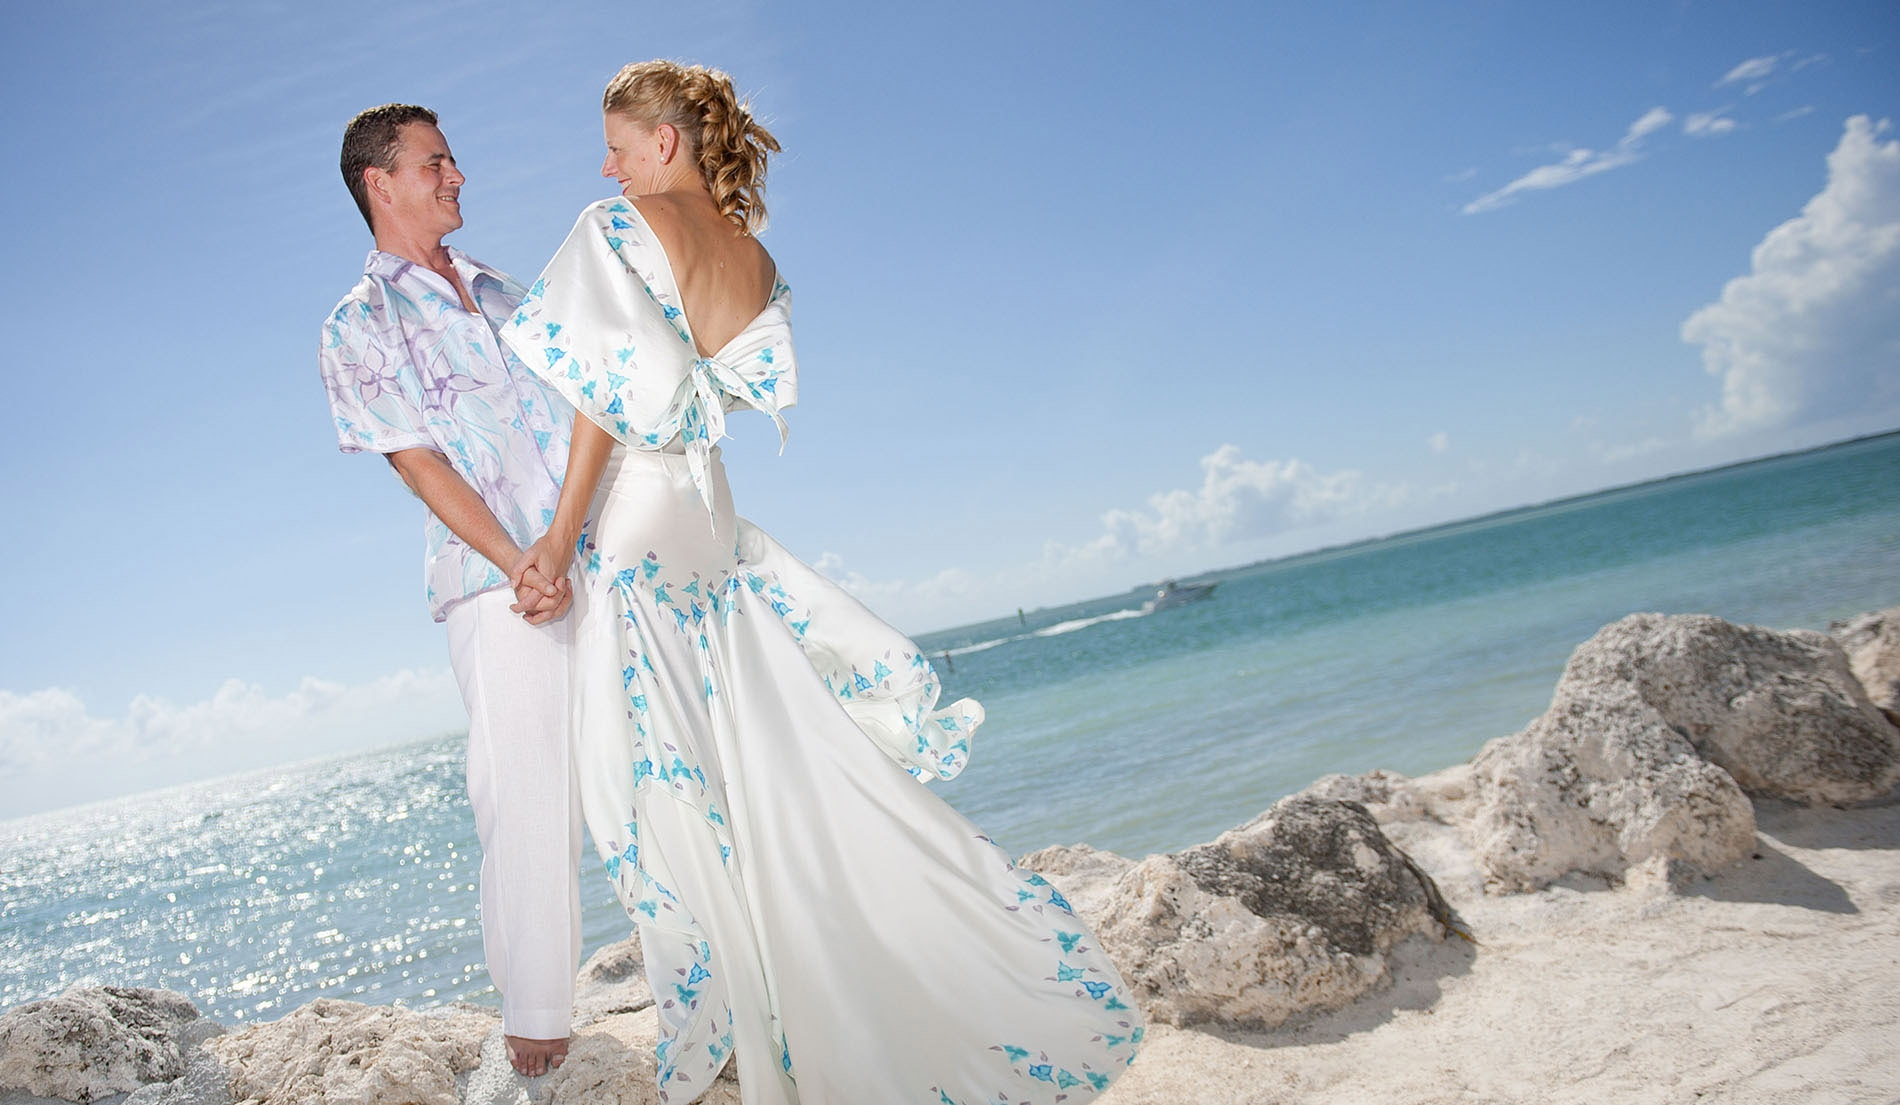 Destination Wedding Attire for Groom and Groomsmen